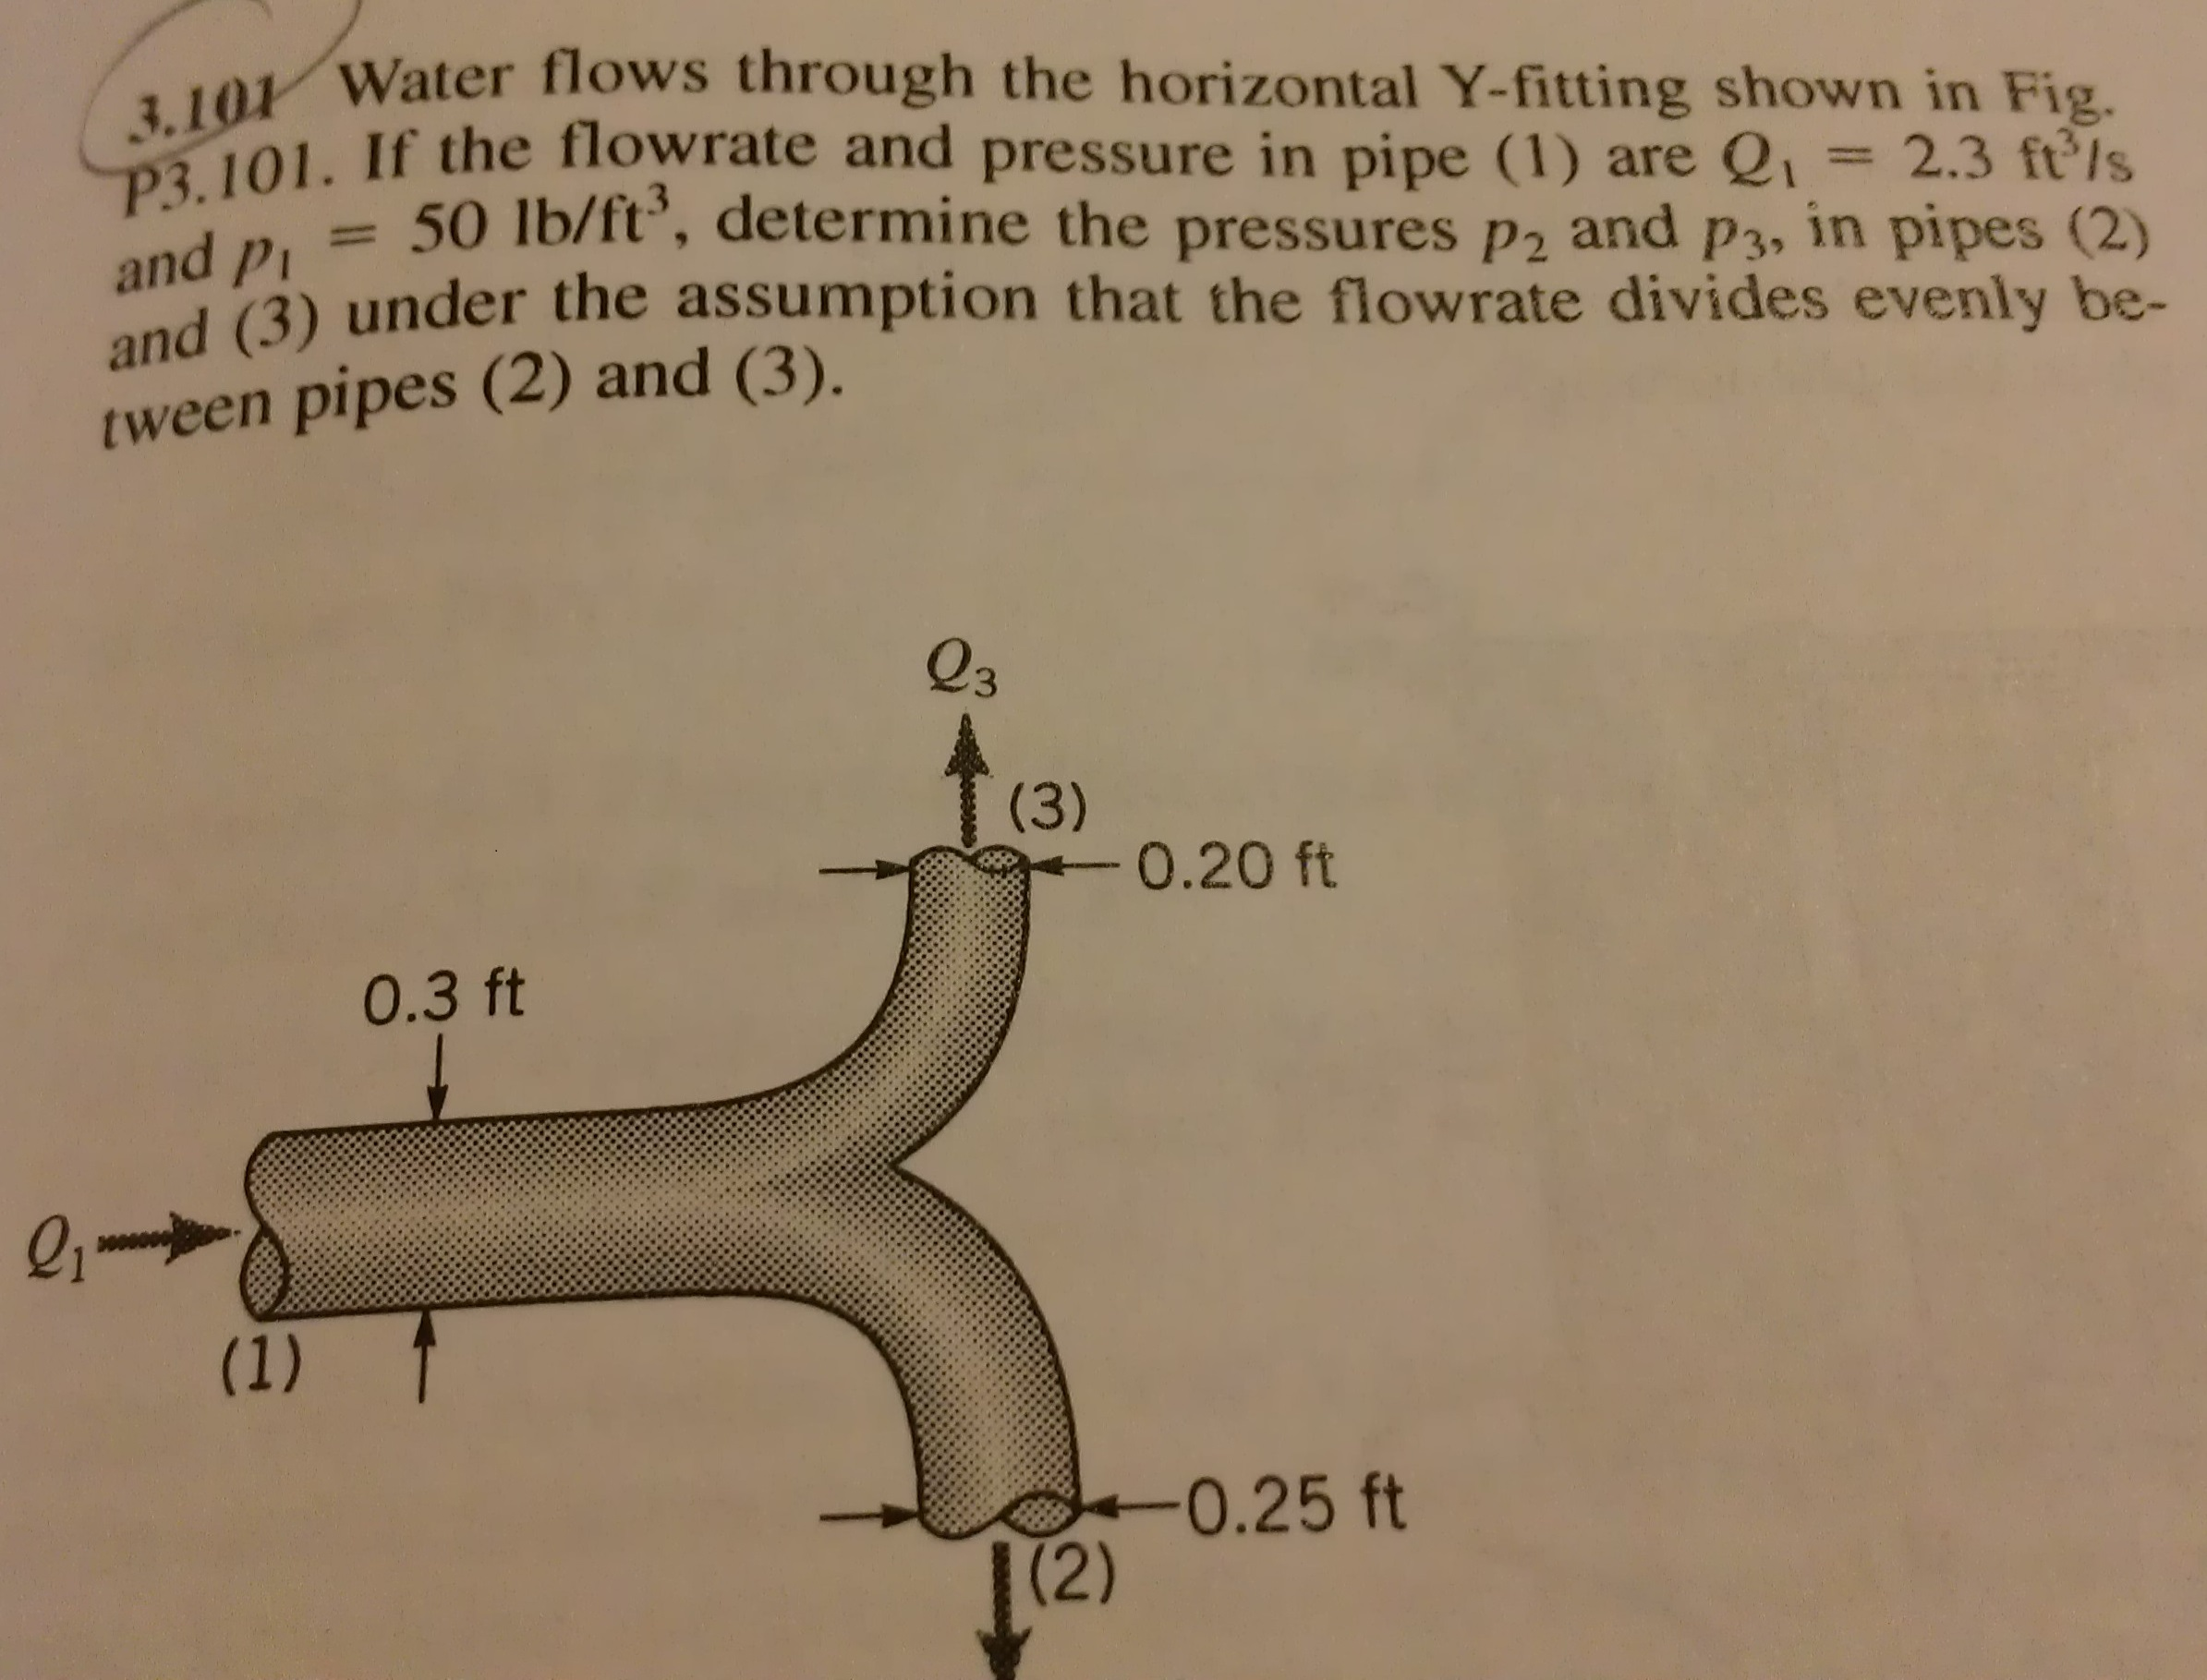 Water flows through the horizontal Y-fitting shown